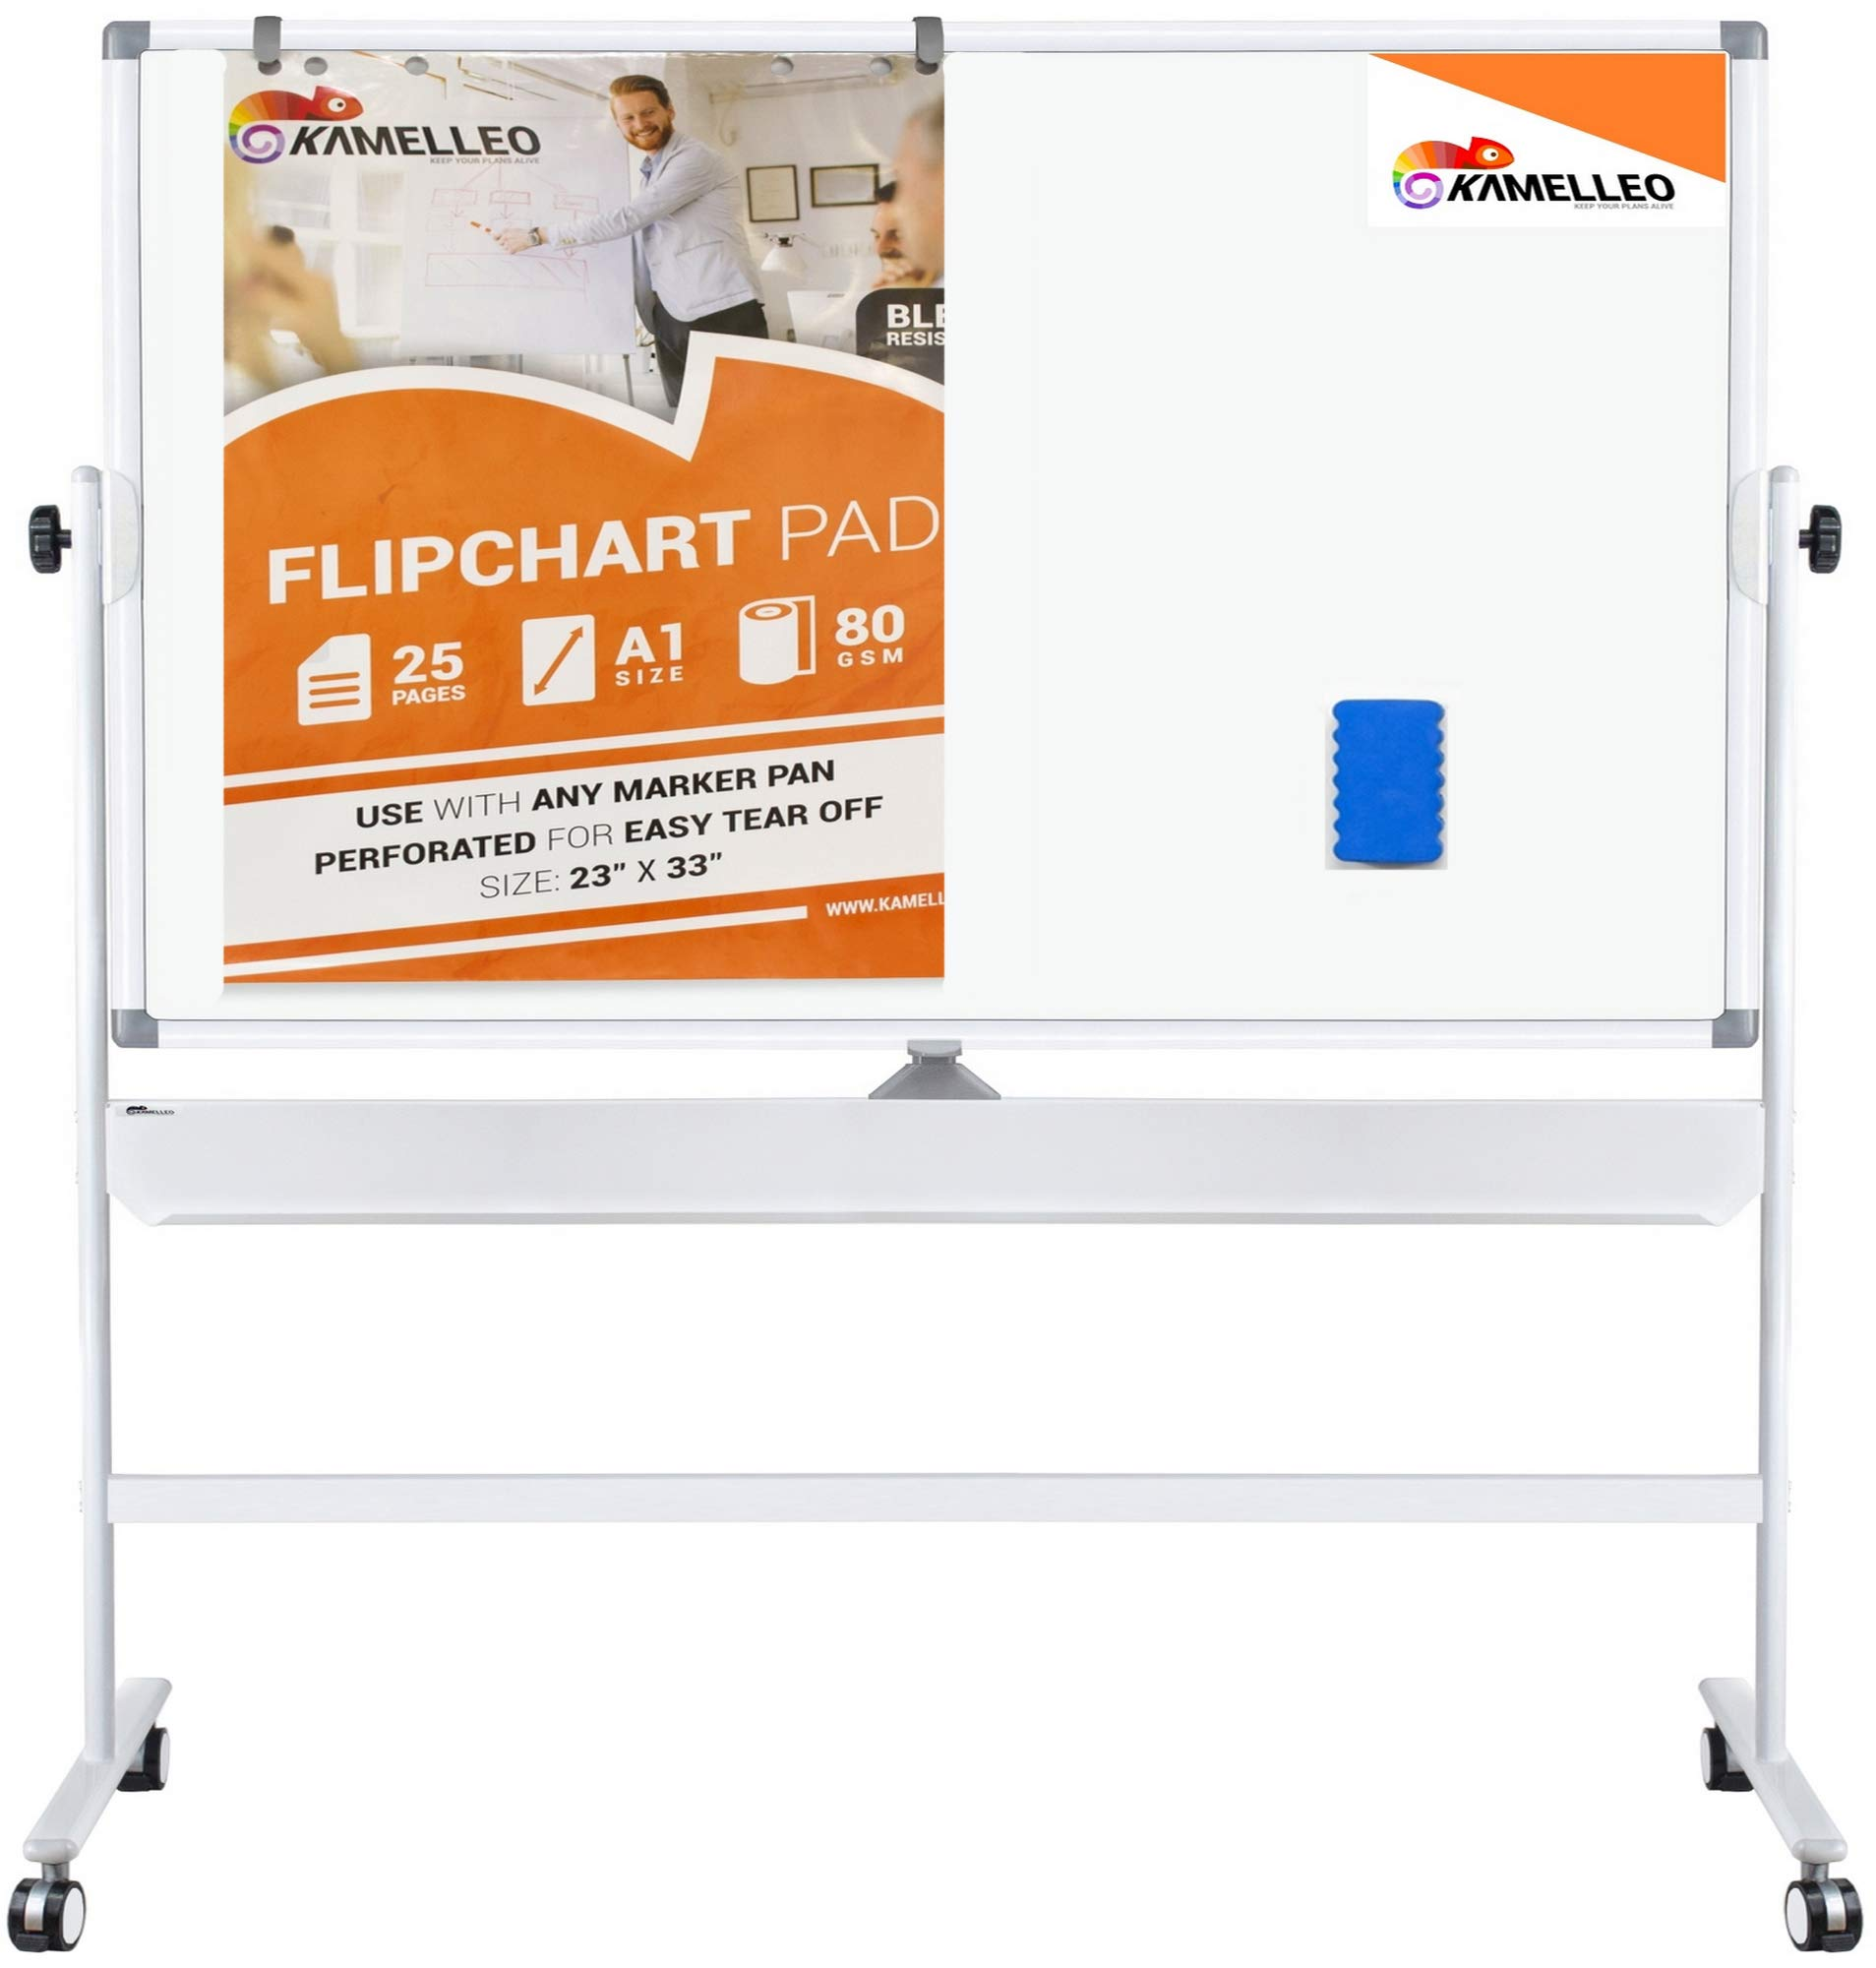 Double Sided Mobile Whiteboard - 48 x 36 Inches Magnetic Dry Erase Board on Wheels - Large Rolling Stand Portable White Board for Home, Office, School Set with Flip Chart Holders, Paper Pad and Eraser